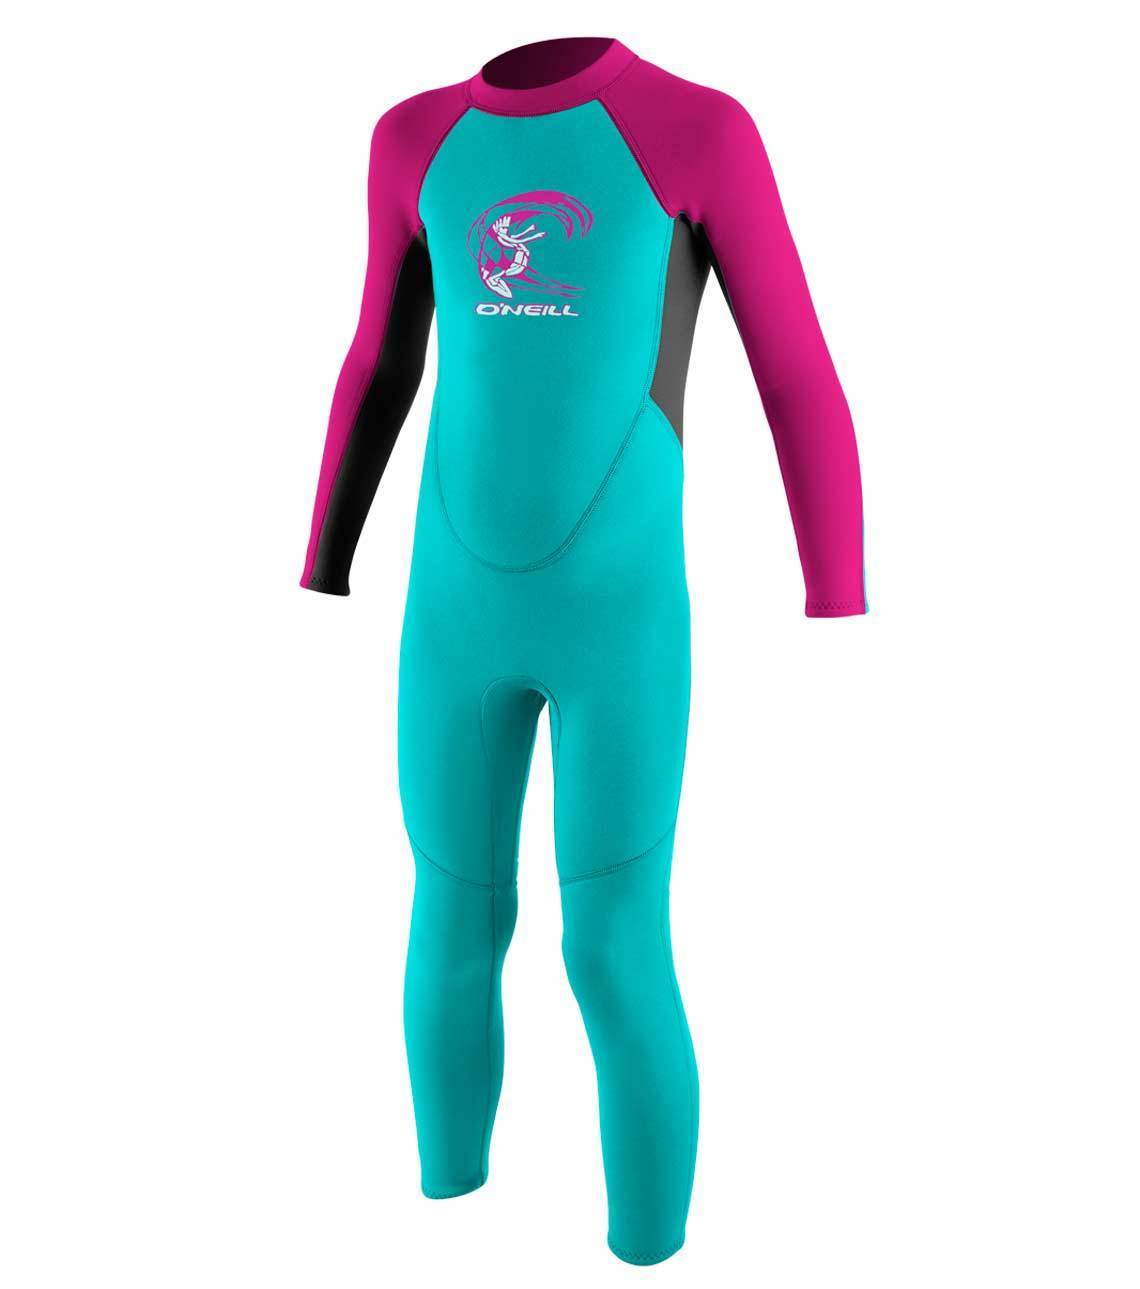 O'Neill Toddler Reactor Full Wetsuit